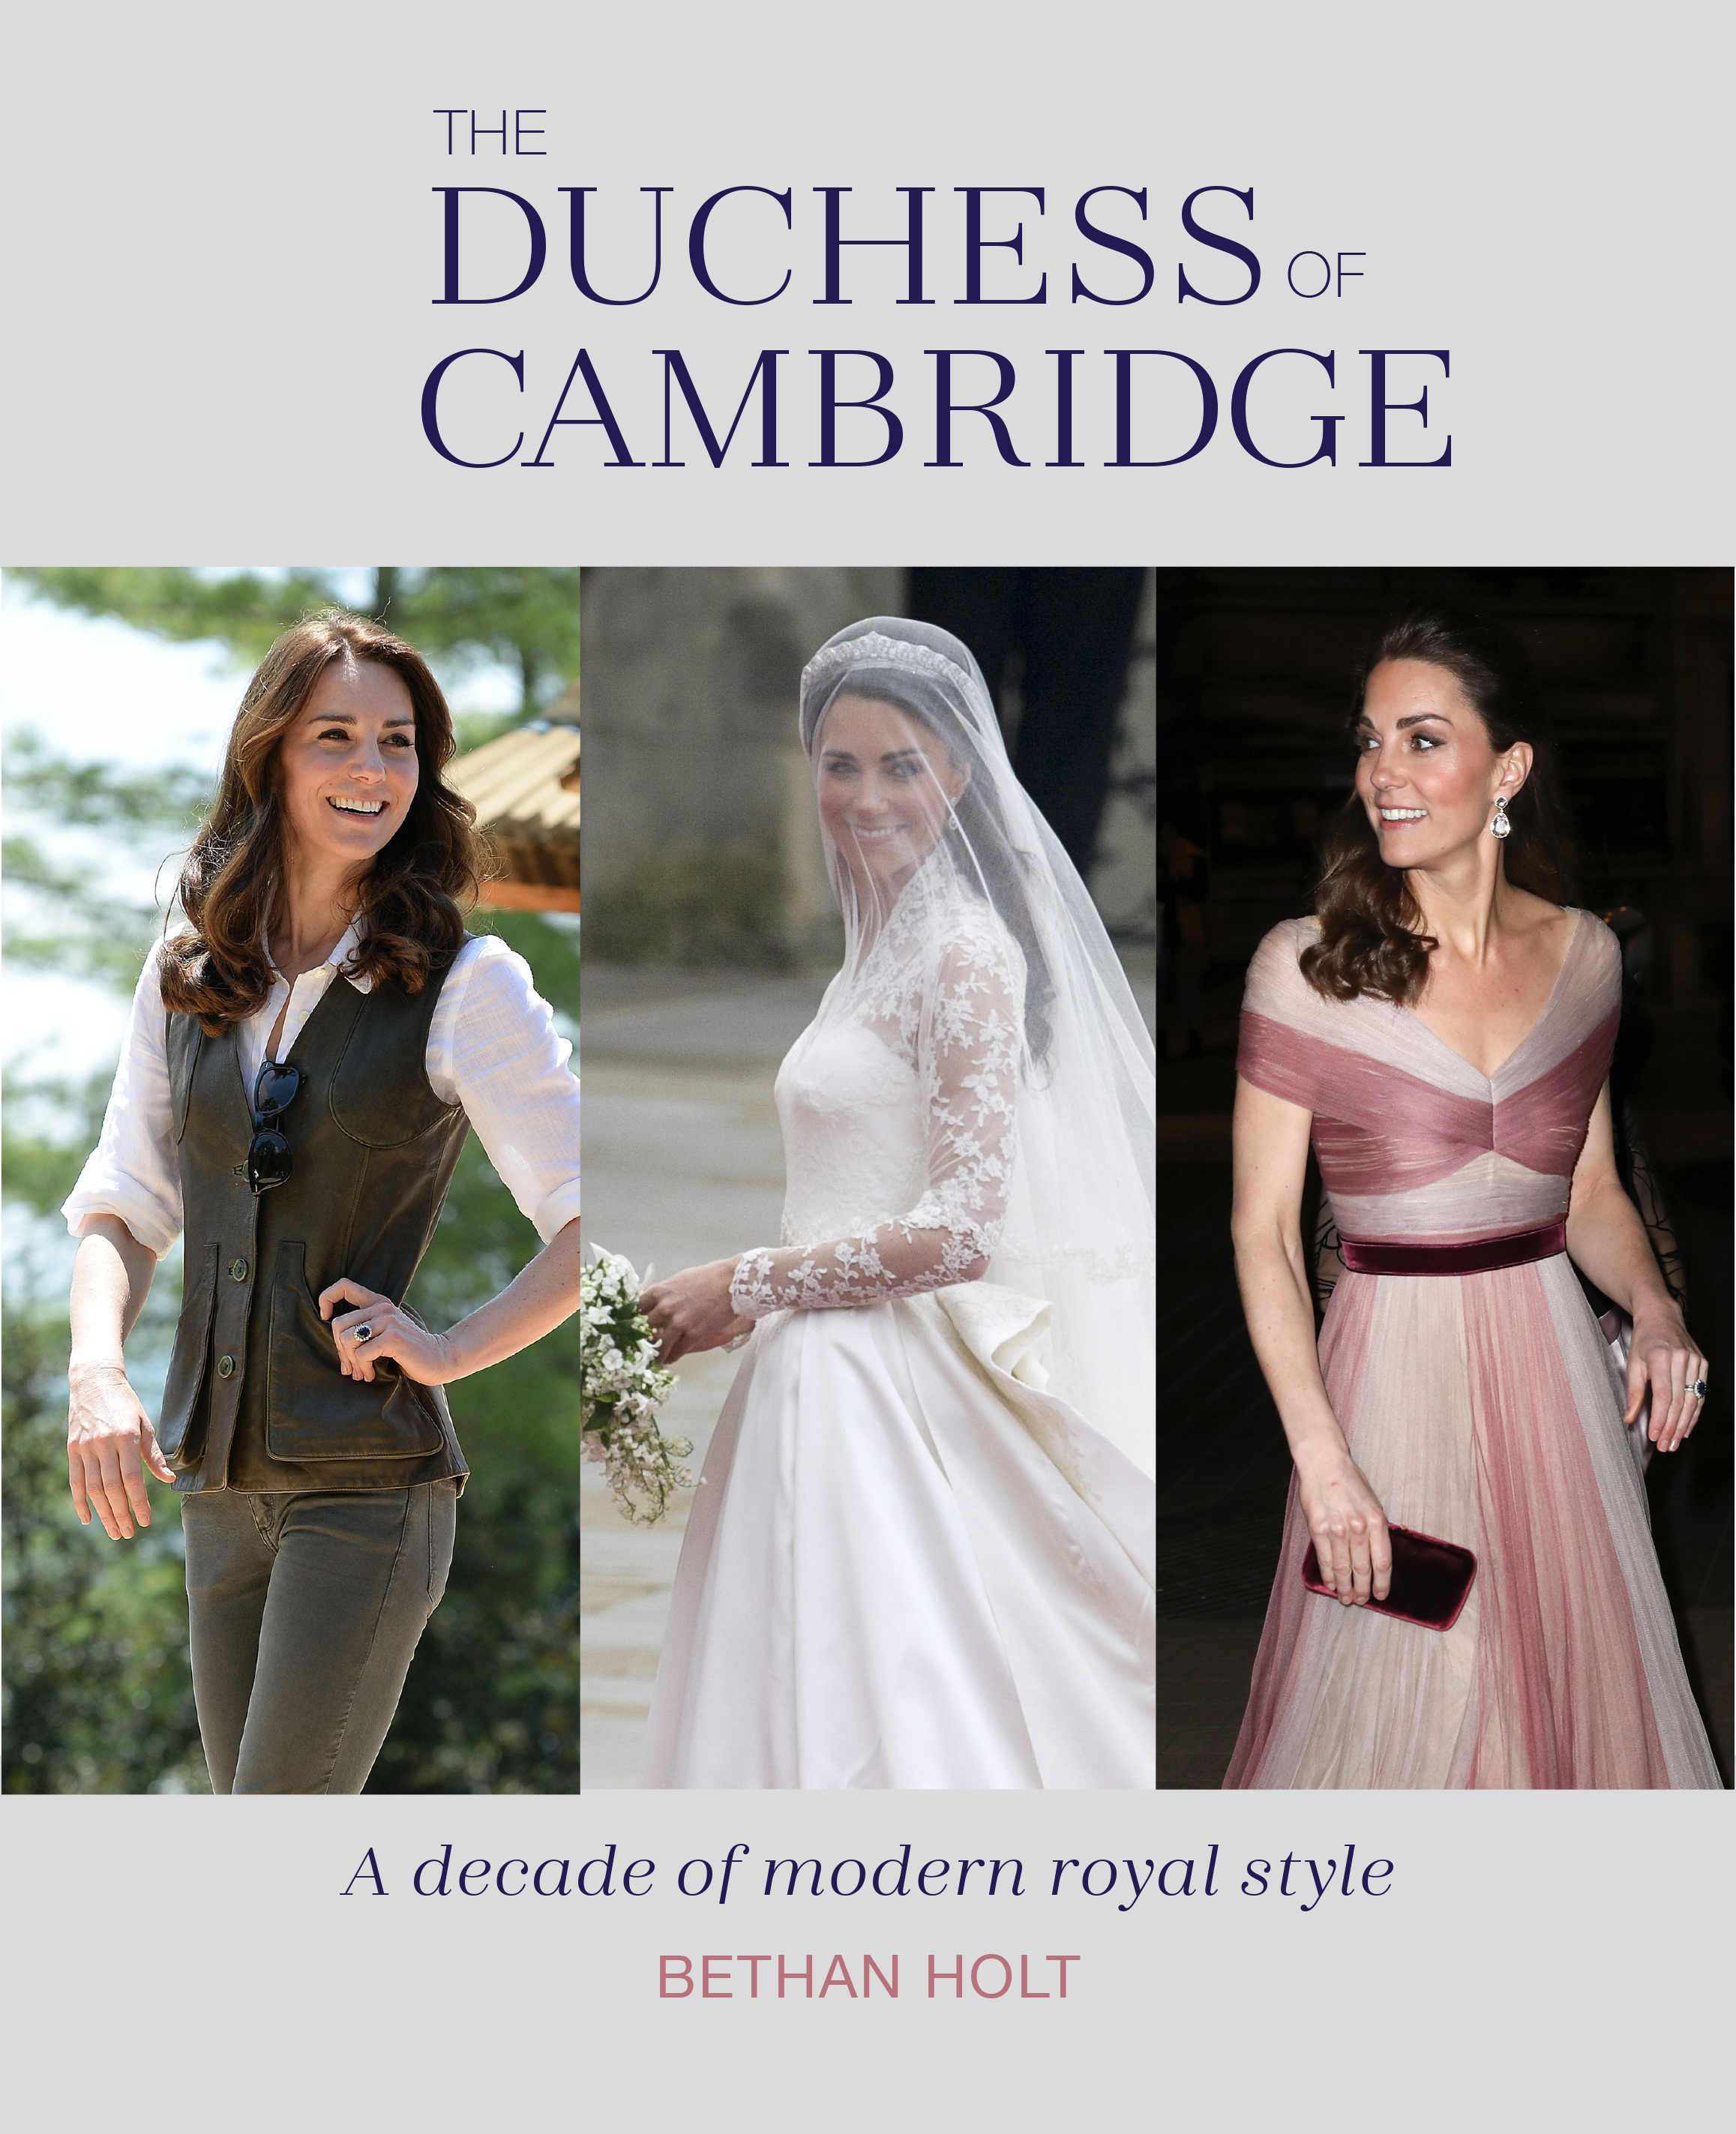 The Duchess of Cambridge: A Decade of Royal Modern Style by Bethan Holt